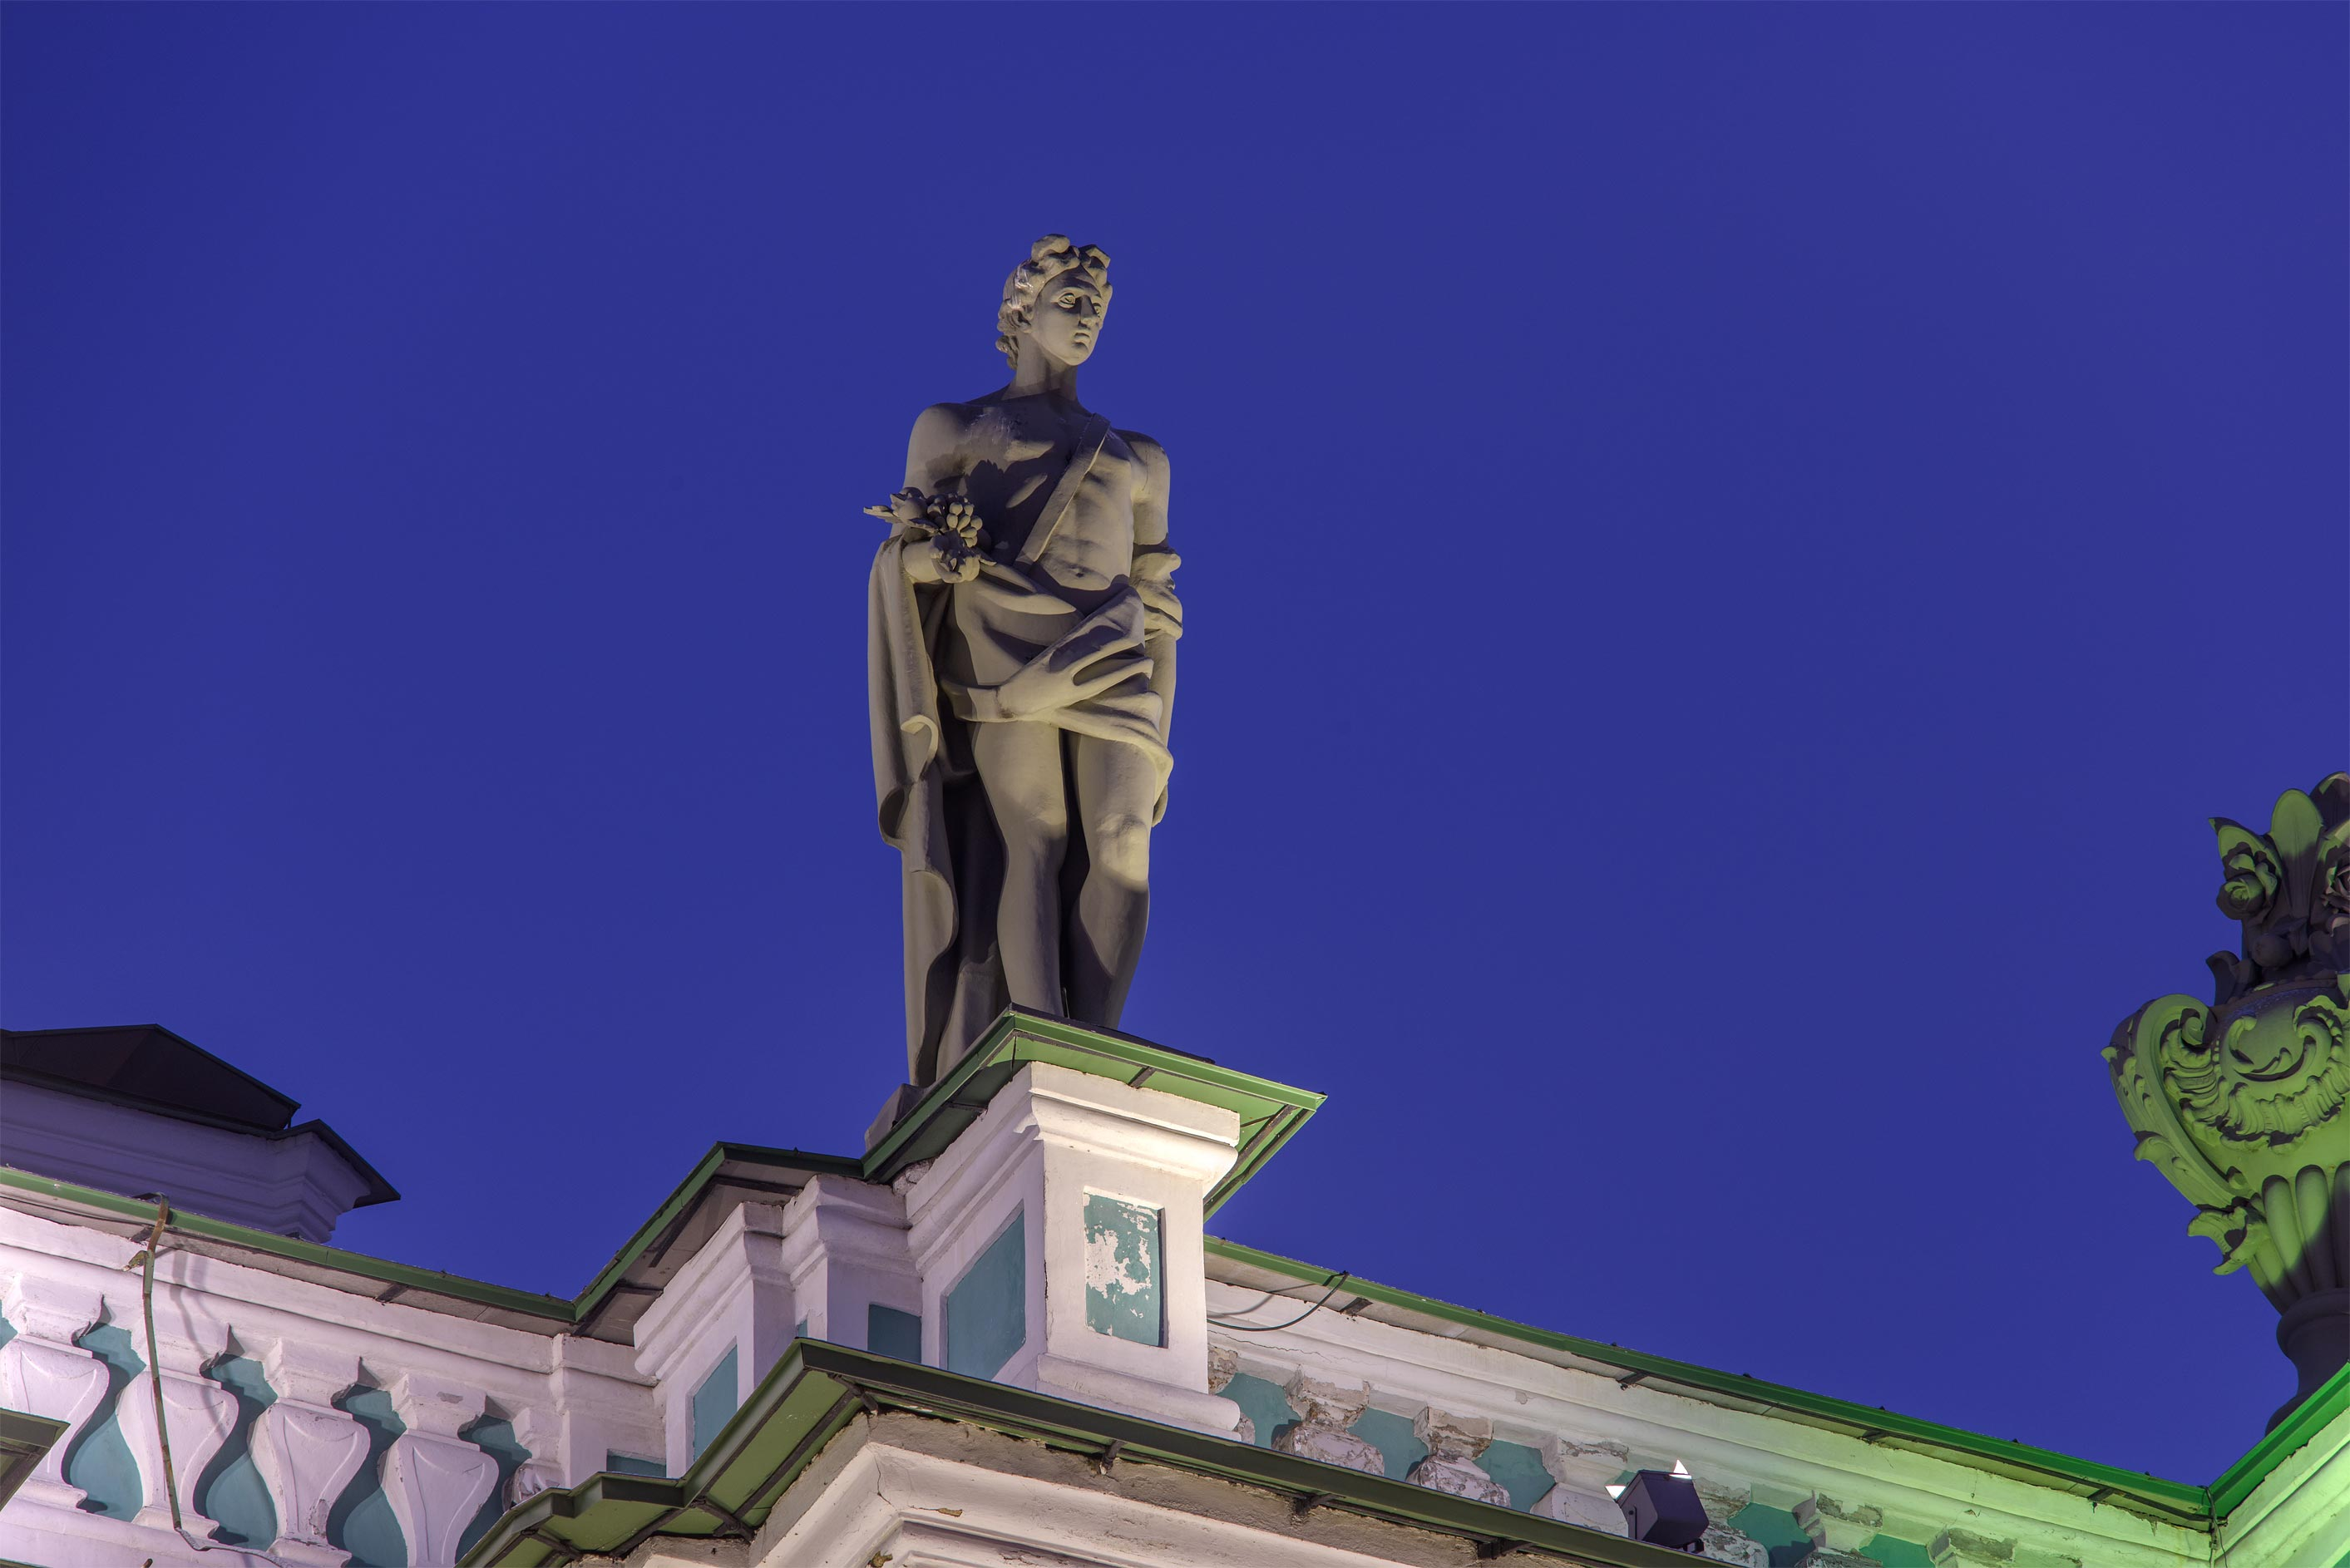 Sculpture on the roof of Winter Palace on Palace Embankment. St.Petersburg, Russia